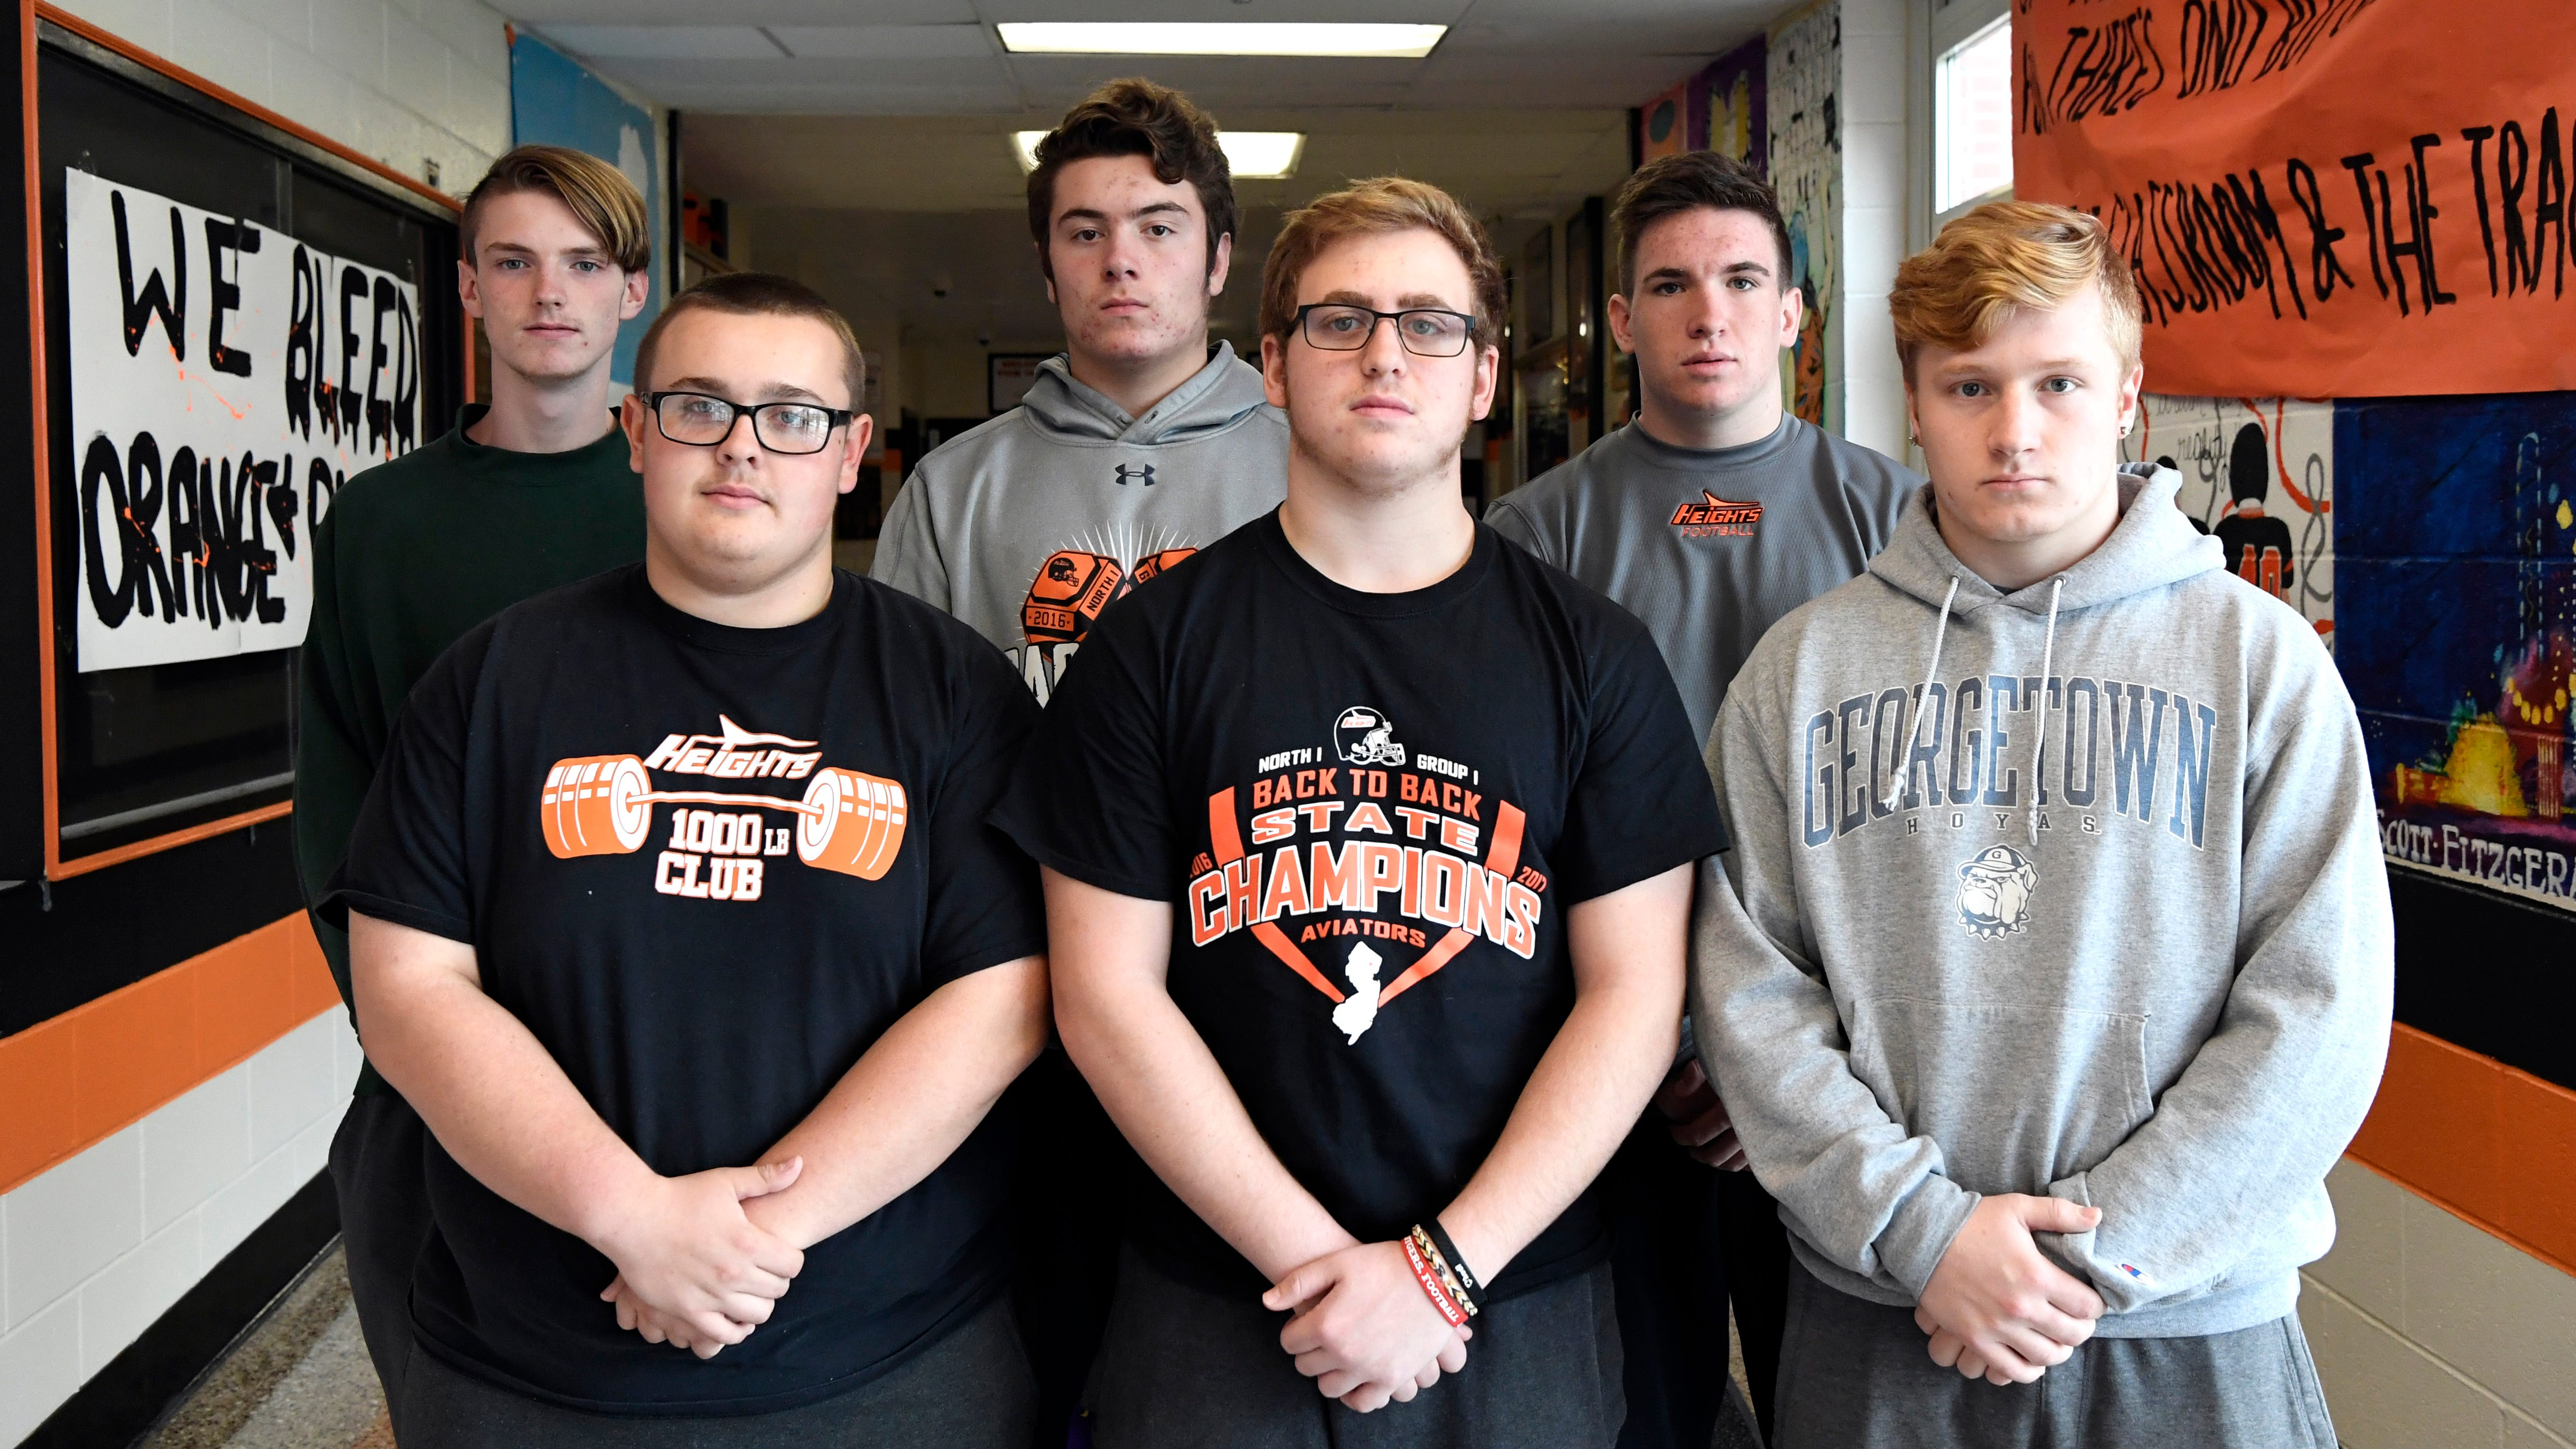 From 'lost cause' to champions, how Hasbrouck Heights football became winners